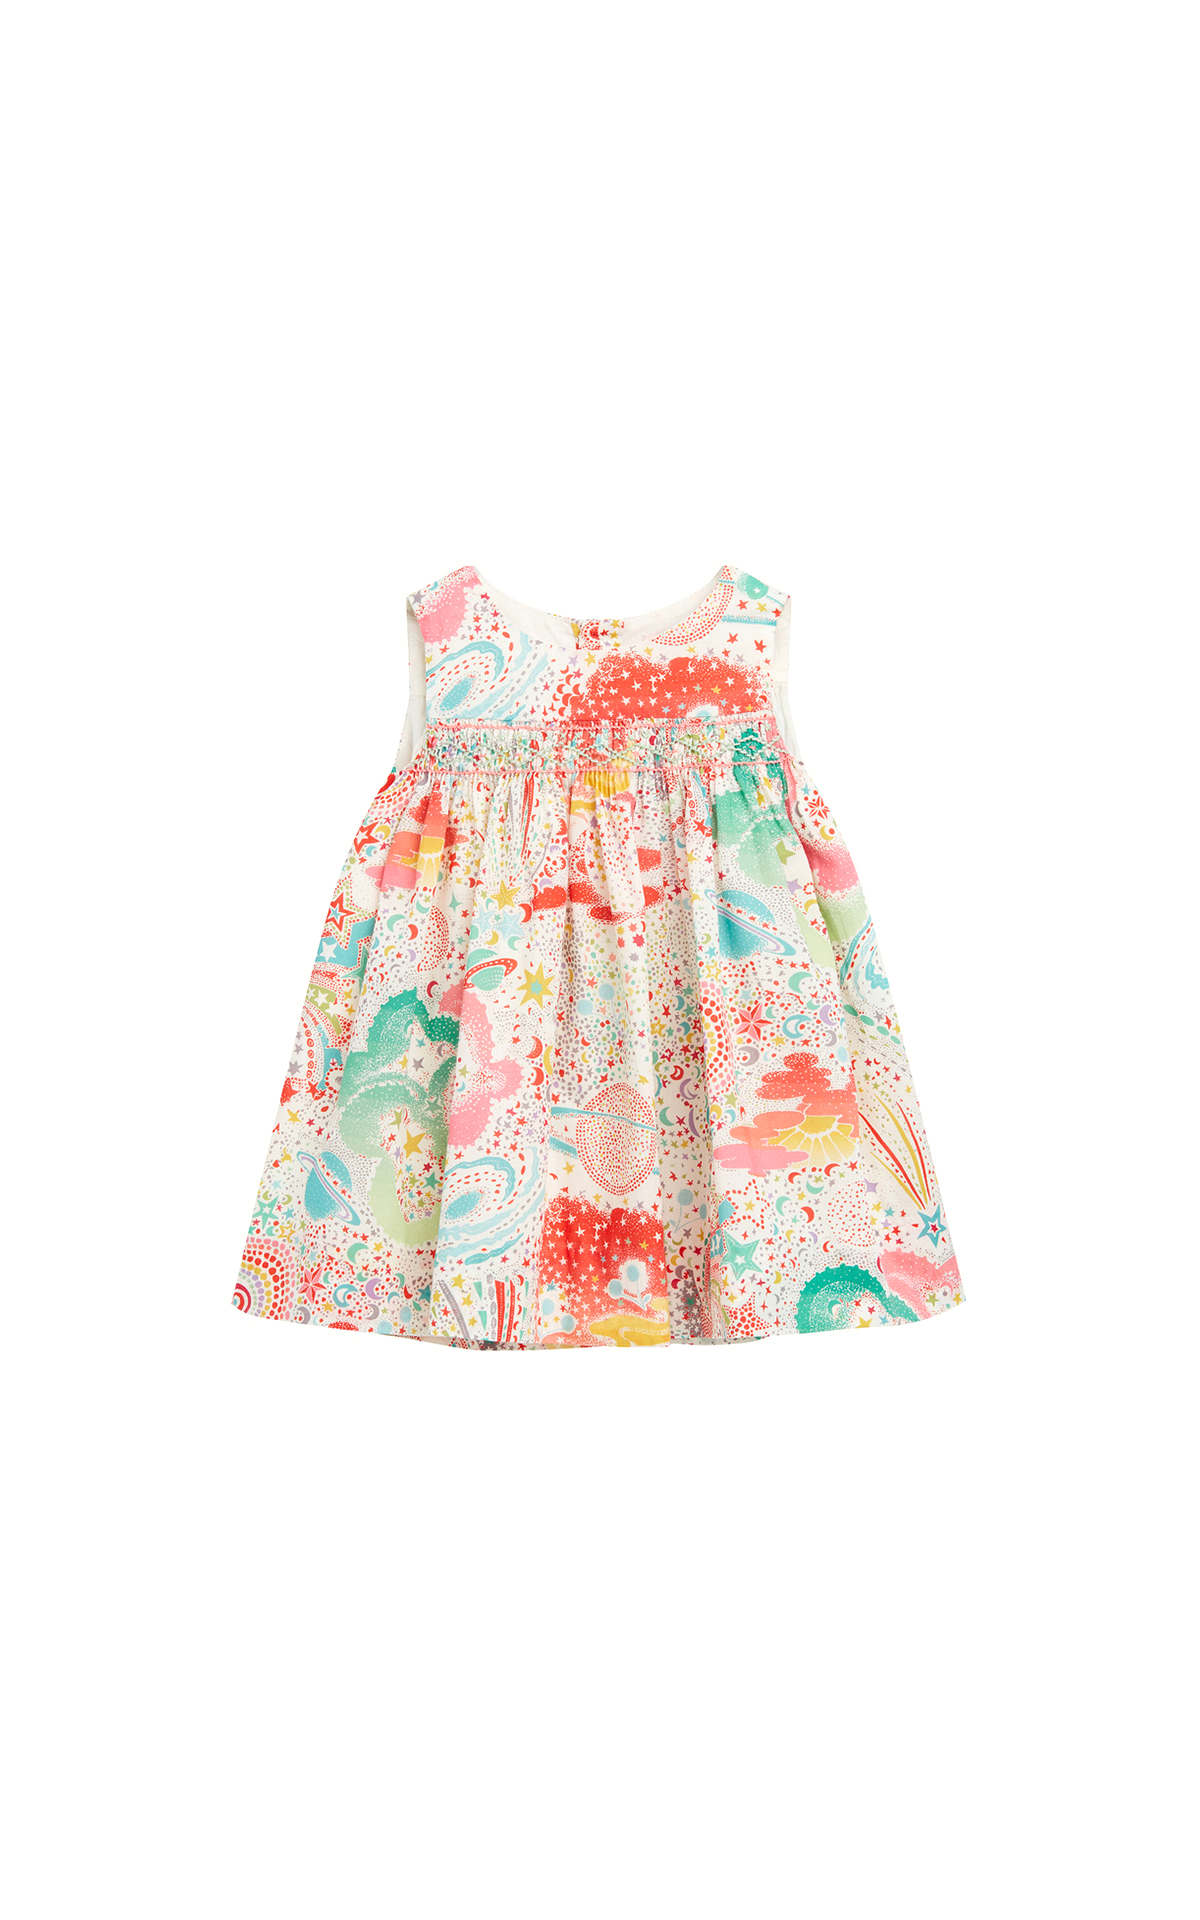 La Vallée Village Bonpoint dress